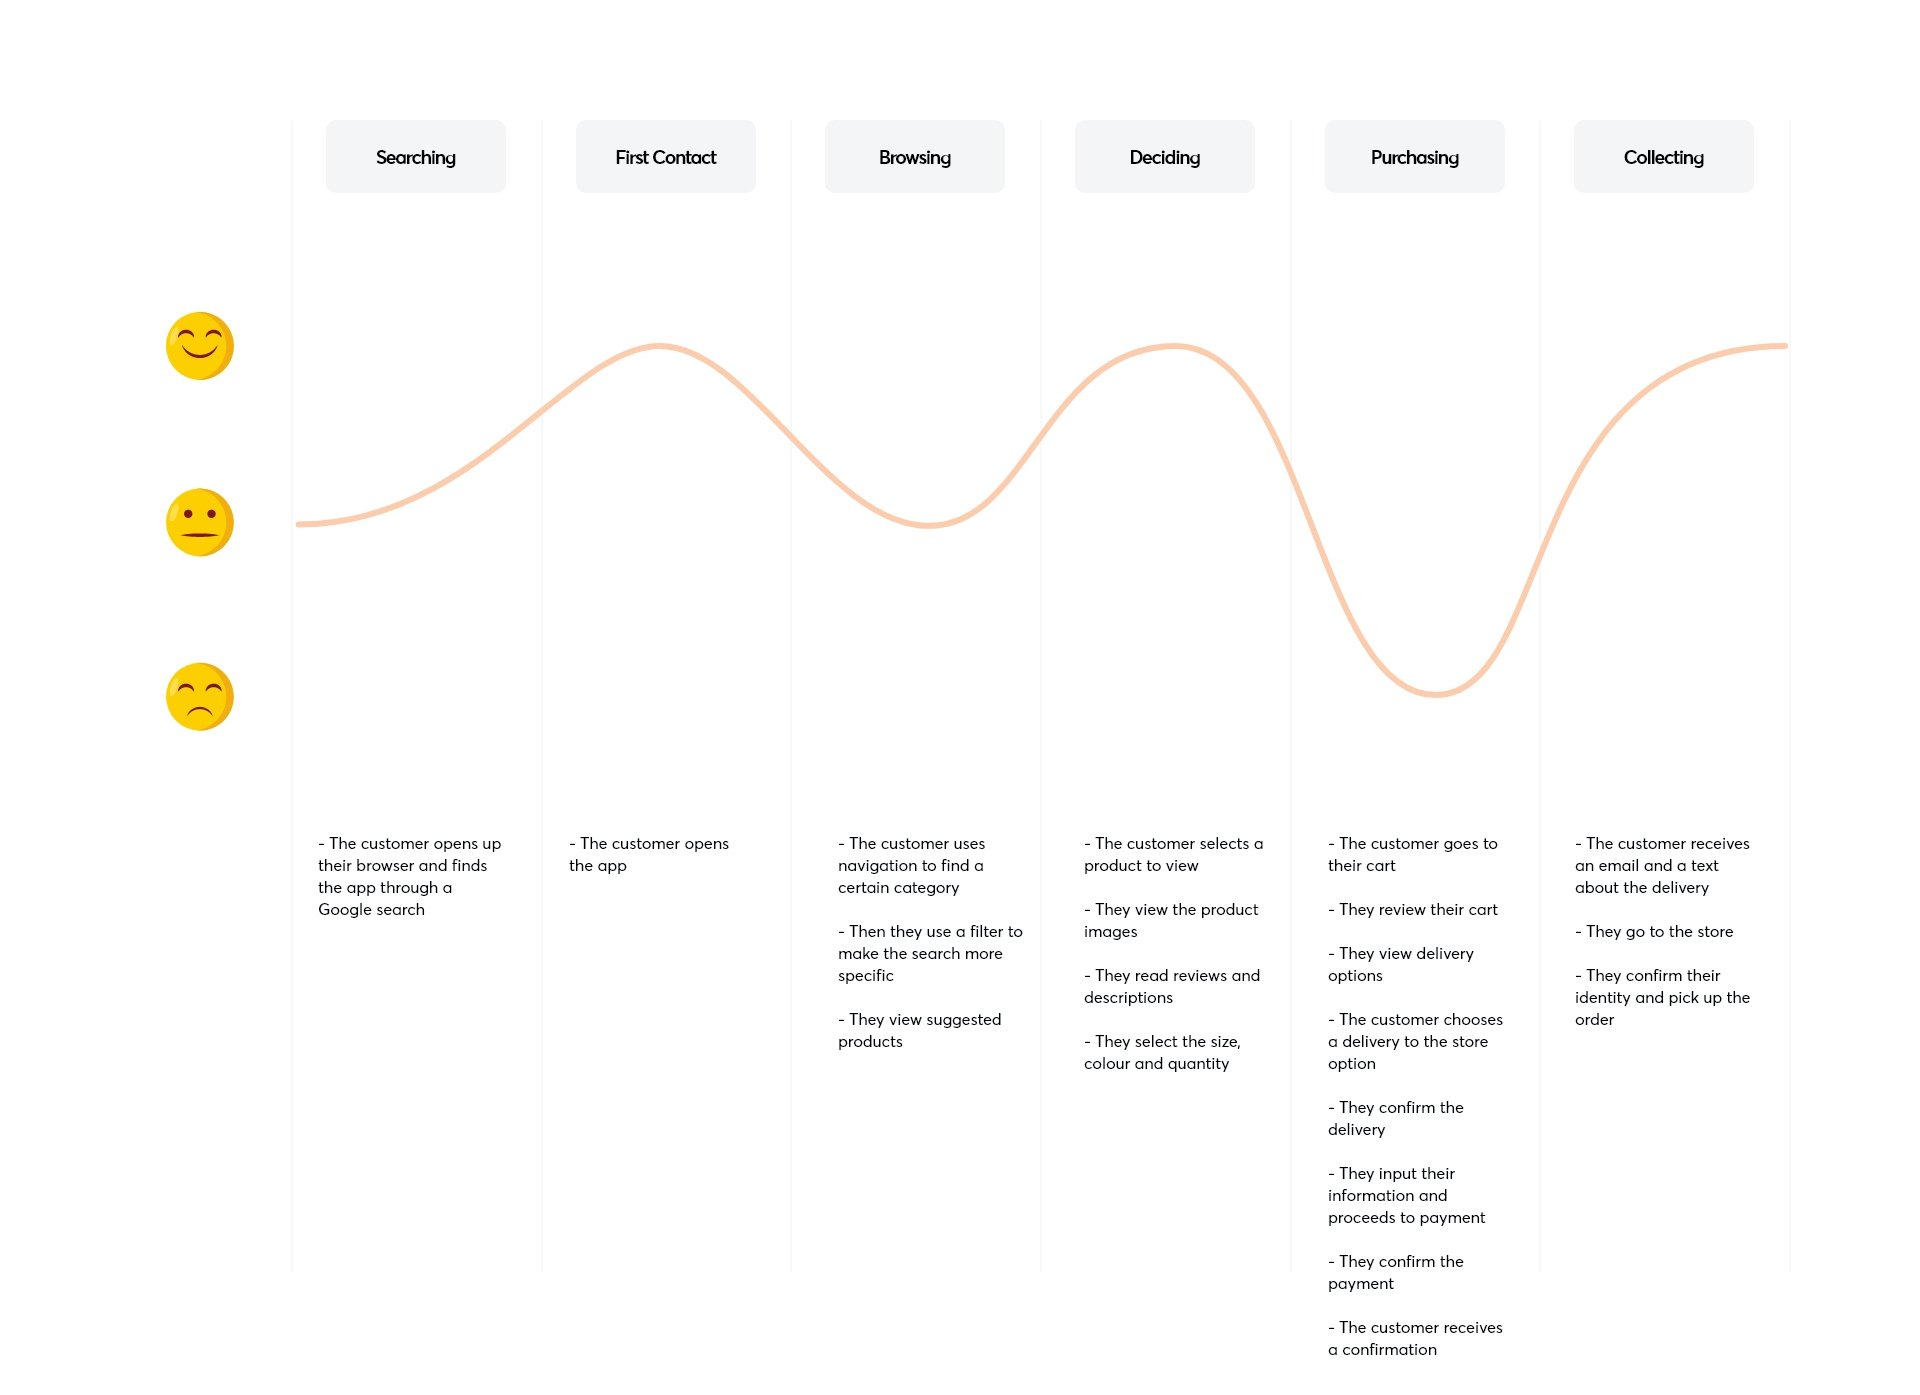 The customer journey and satisfaction level when using the sneakers eCommerce app